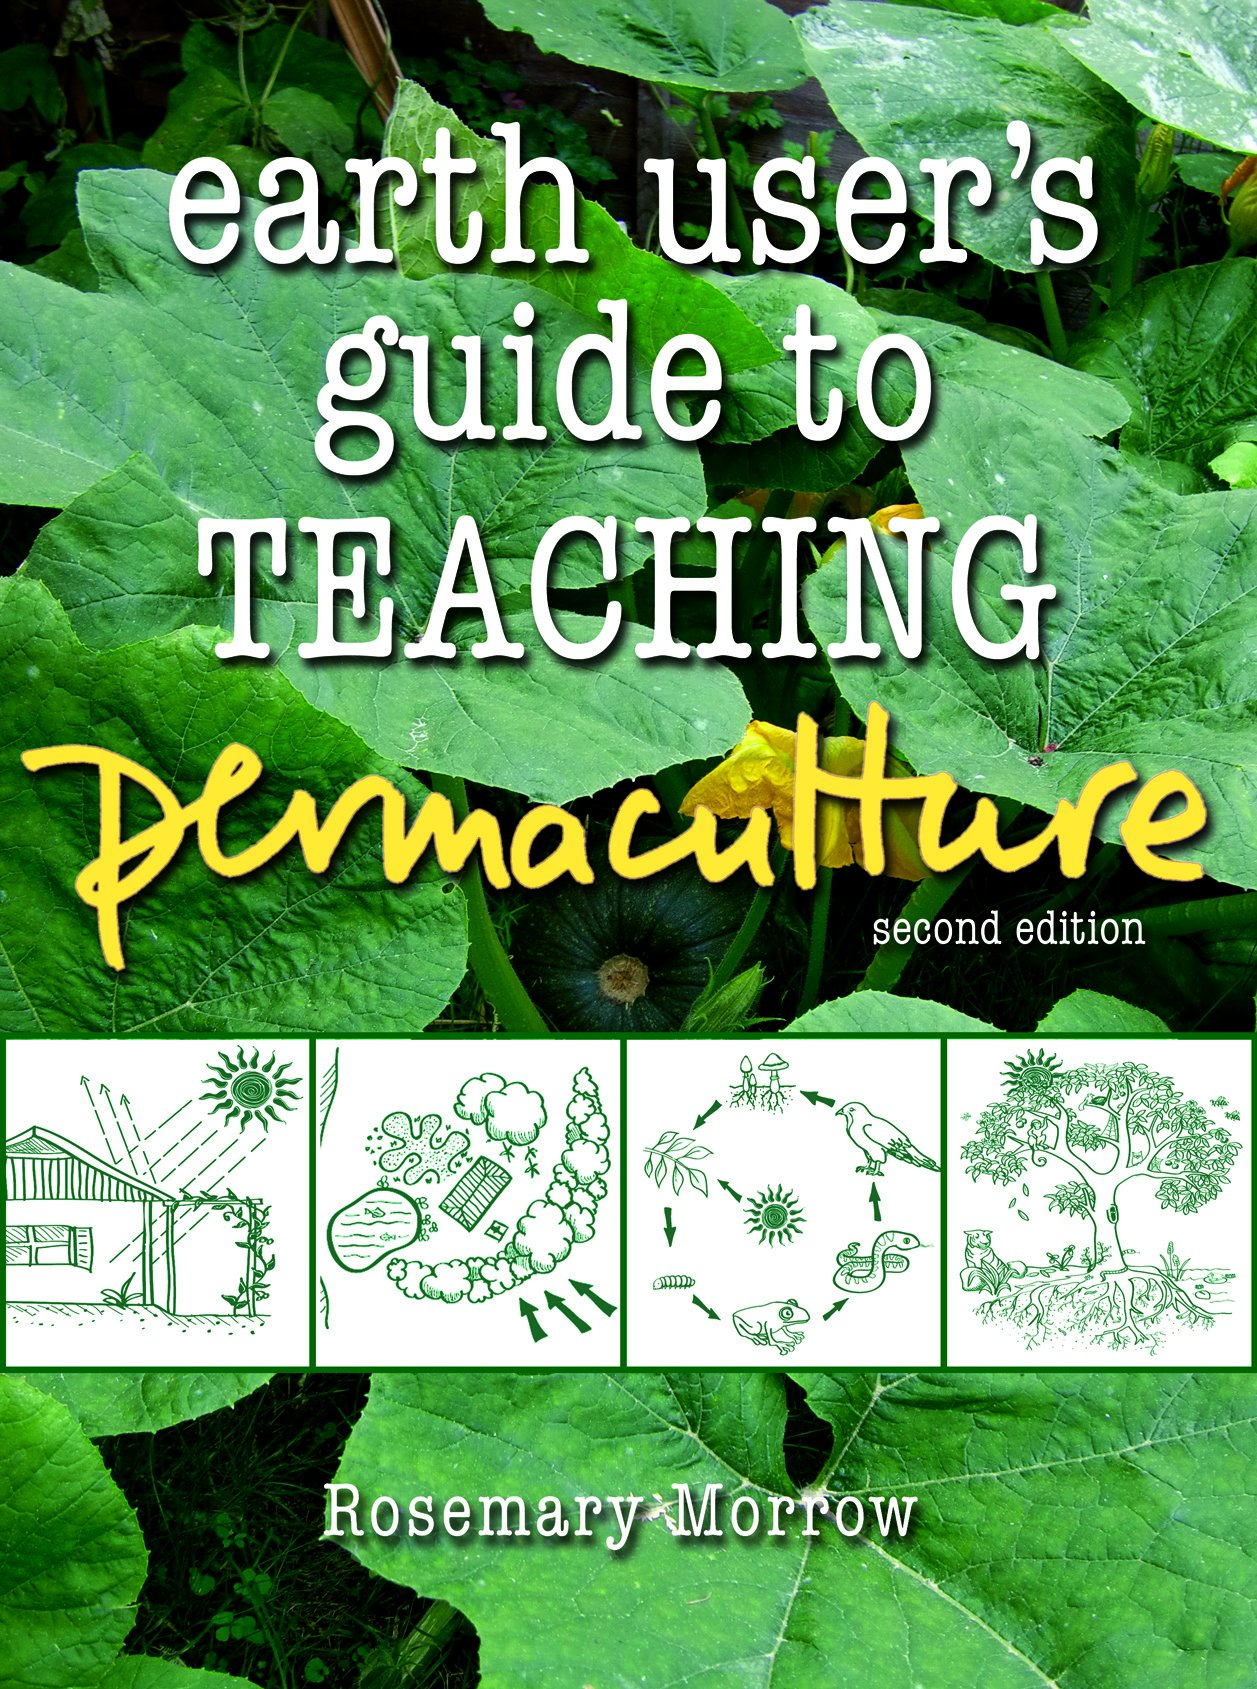 earth user s guide to teaching permaculture rosemary morrow rh amazon com Guide for Dumbells Workout Teacher Guide Book